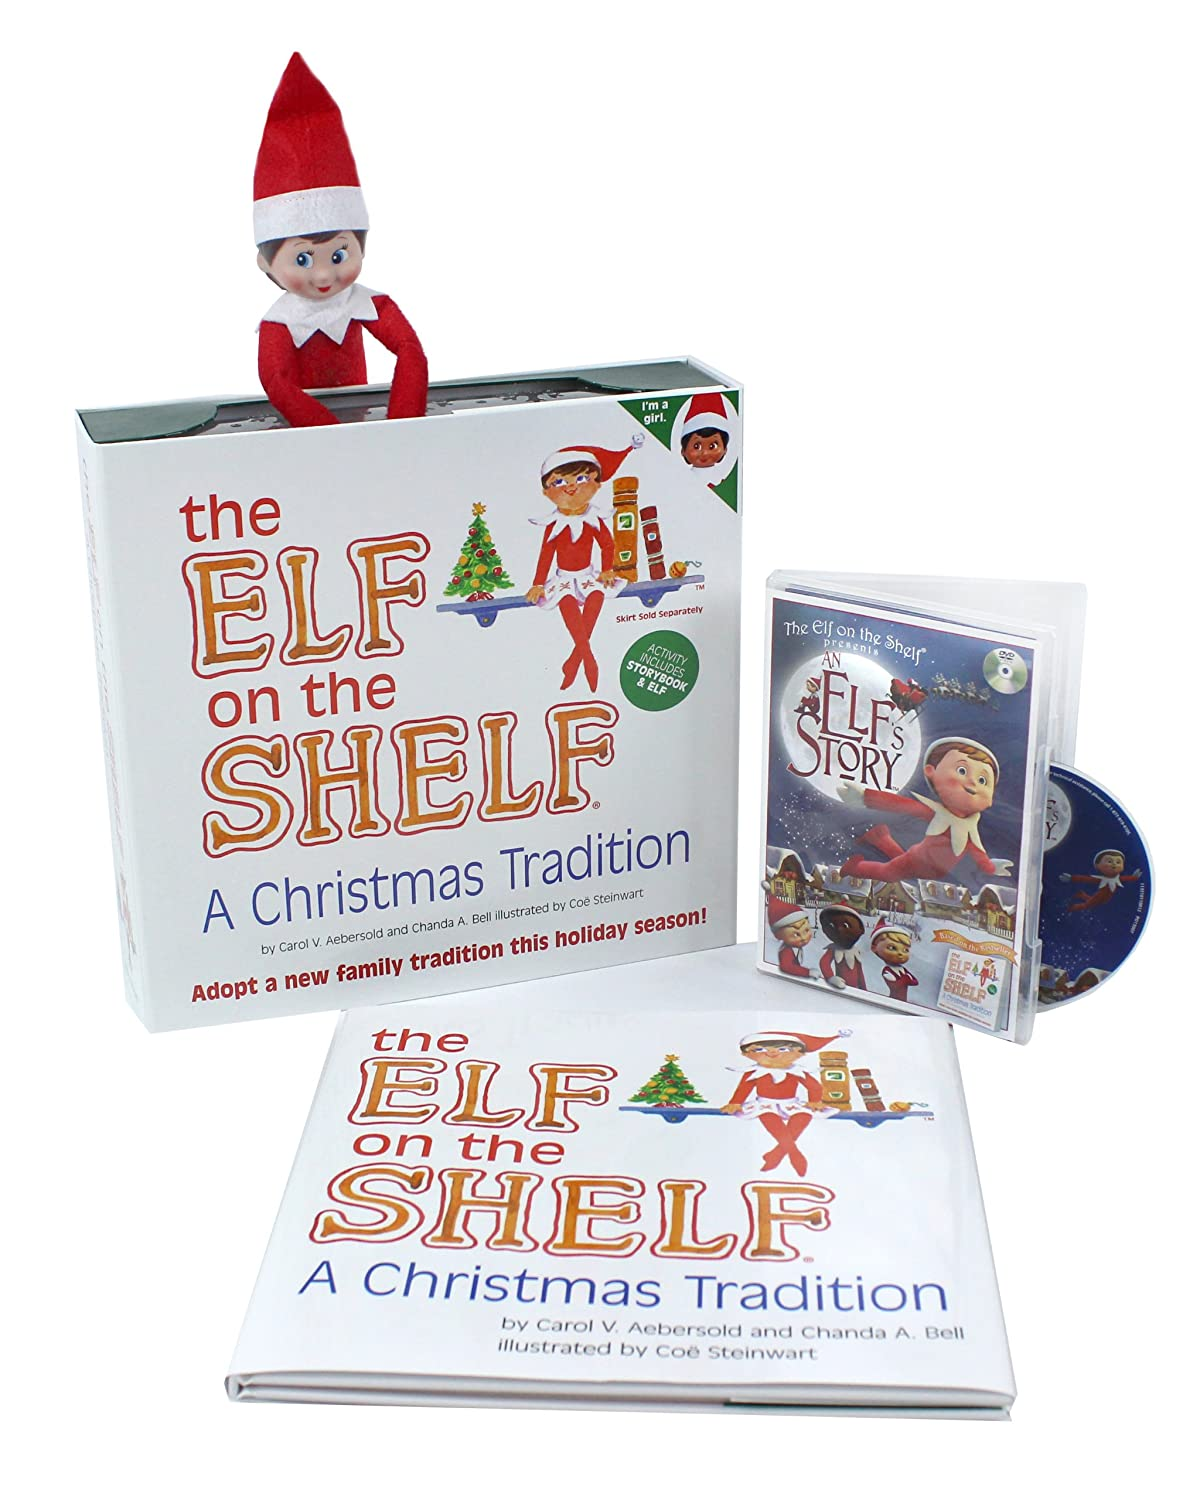 Amazon.com: The Elf on the Shelf A Christmas Tradition (Blue-Eyed ...